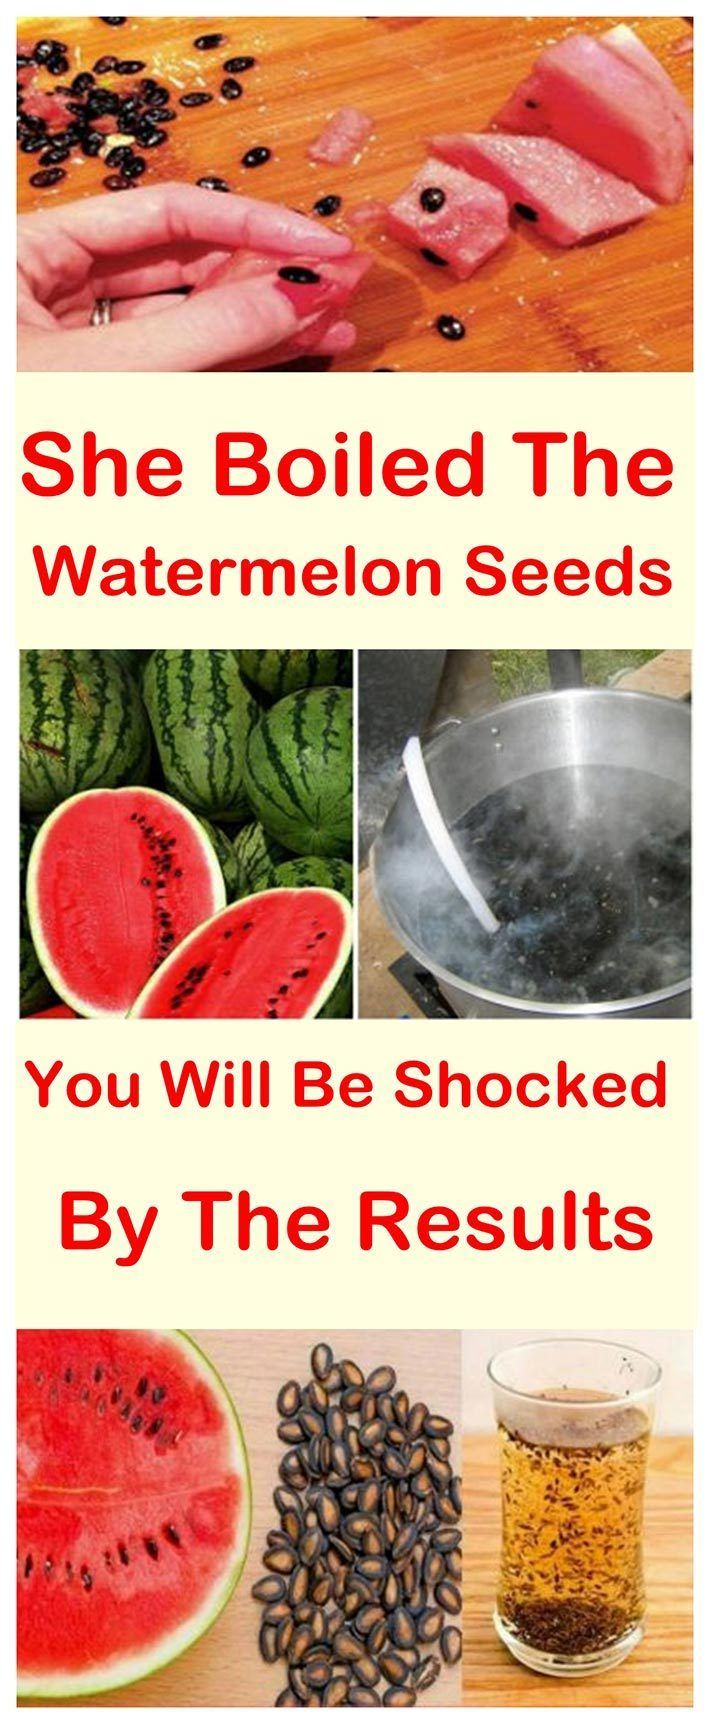 Boil Watermelon Seeds And Get Ready To Be Stunned By The Results#health#benefits#watermelon#prevent#tea#seeds